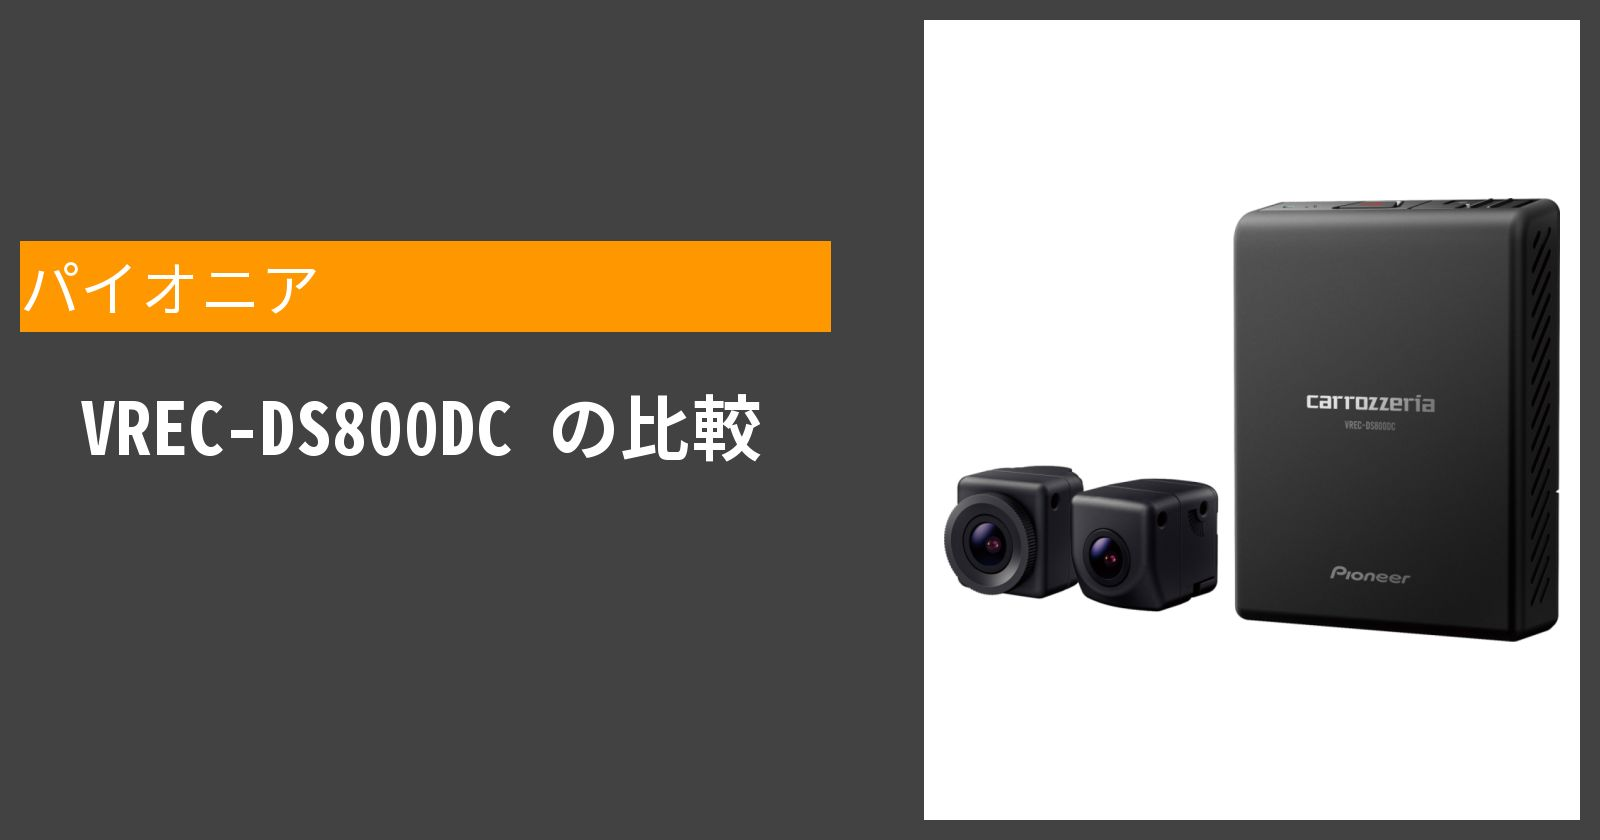 VREC-DS800DCを徹底評価